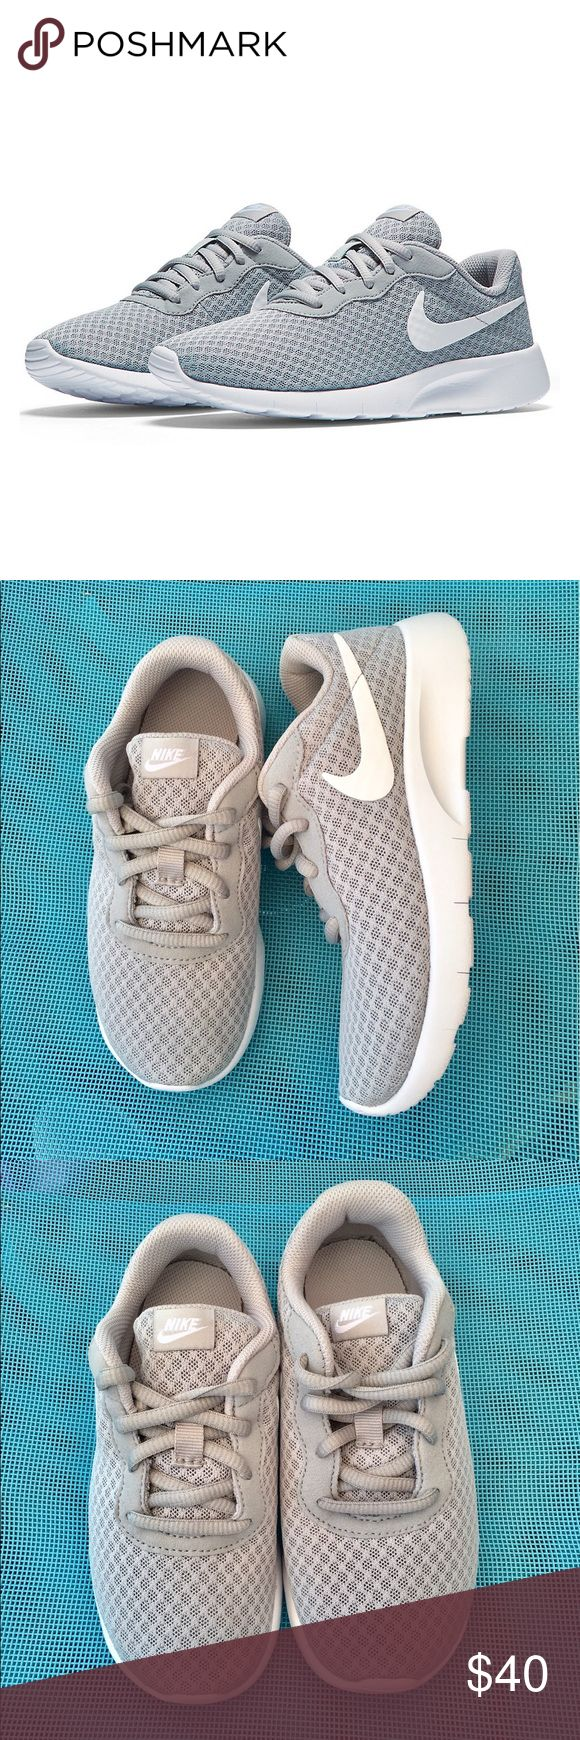 """Nike kids running shoes!! Nike Tanjun kids running shoes, size youth 13, color light gray and white, """"brand new"""" Nike Shoes Sneakers"""